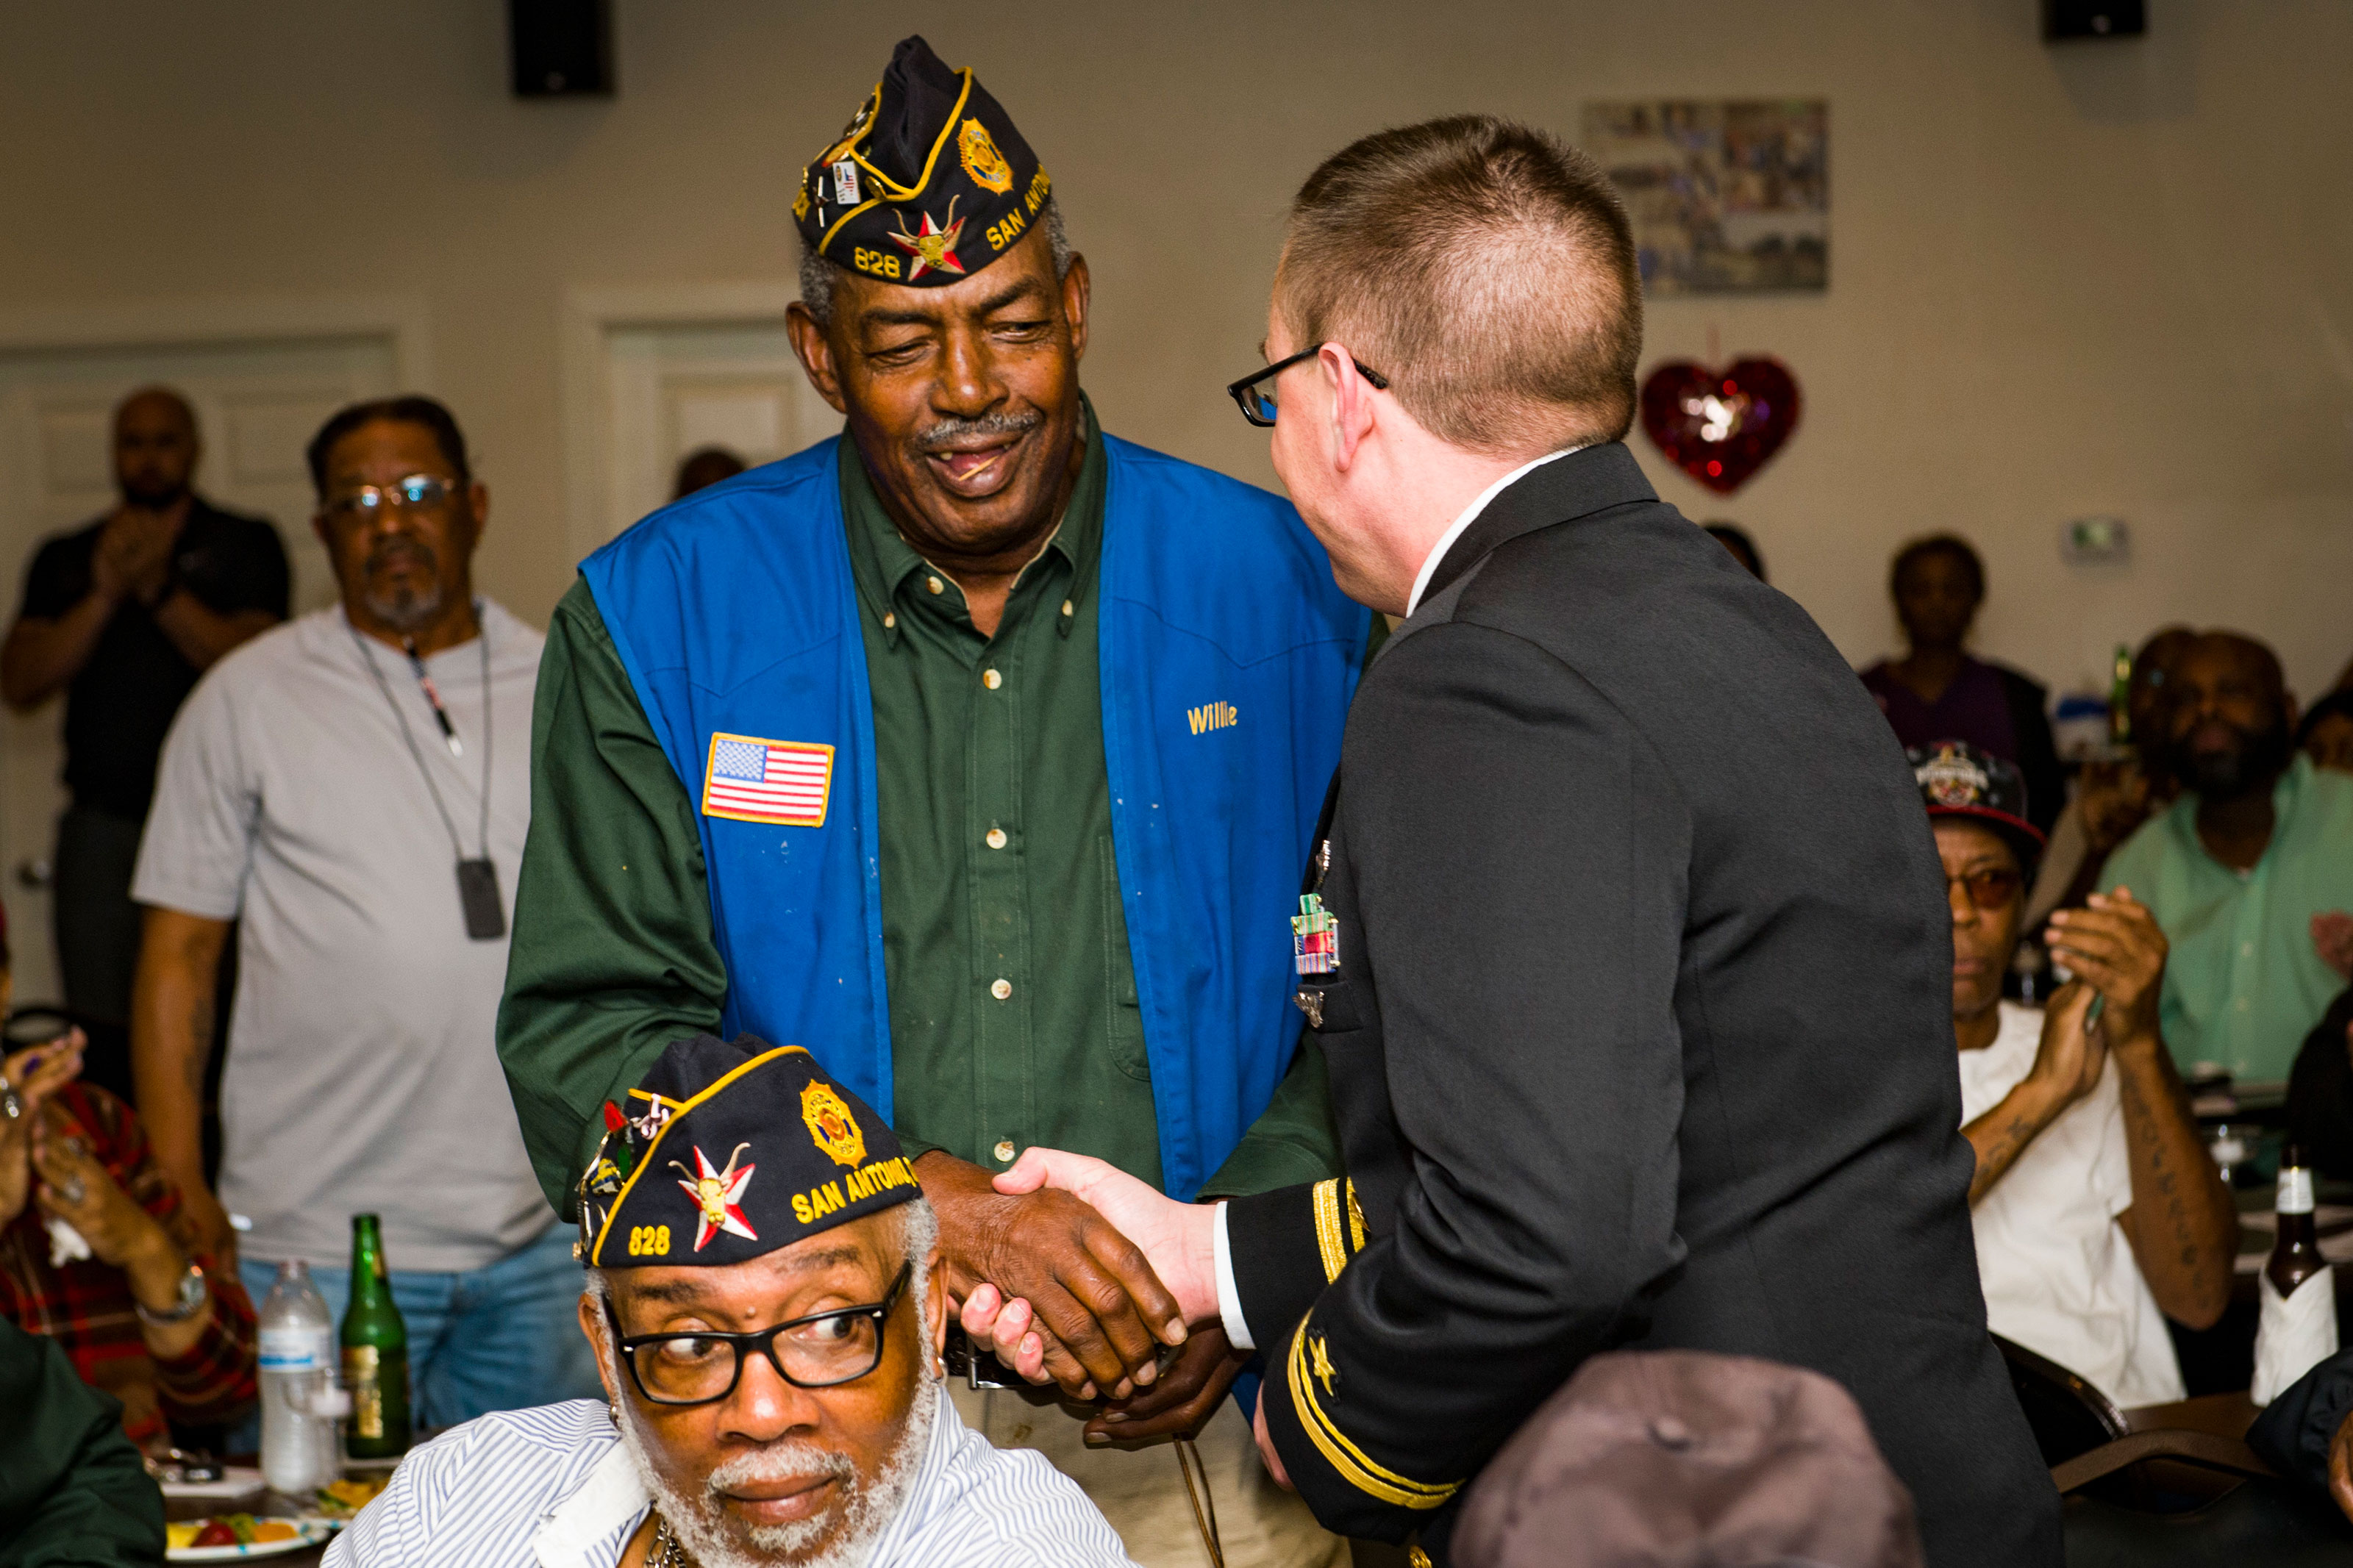 Lt. j.g. Mack Jamieson gives a pin to an American Legion Fred Brock Post No. 828 Vietnam war veteran as part of San Antonio Navy Week. (U.S. Navy/Specialist 3rd Class Casey J. Hopkins)